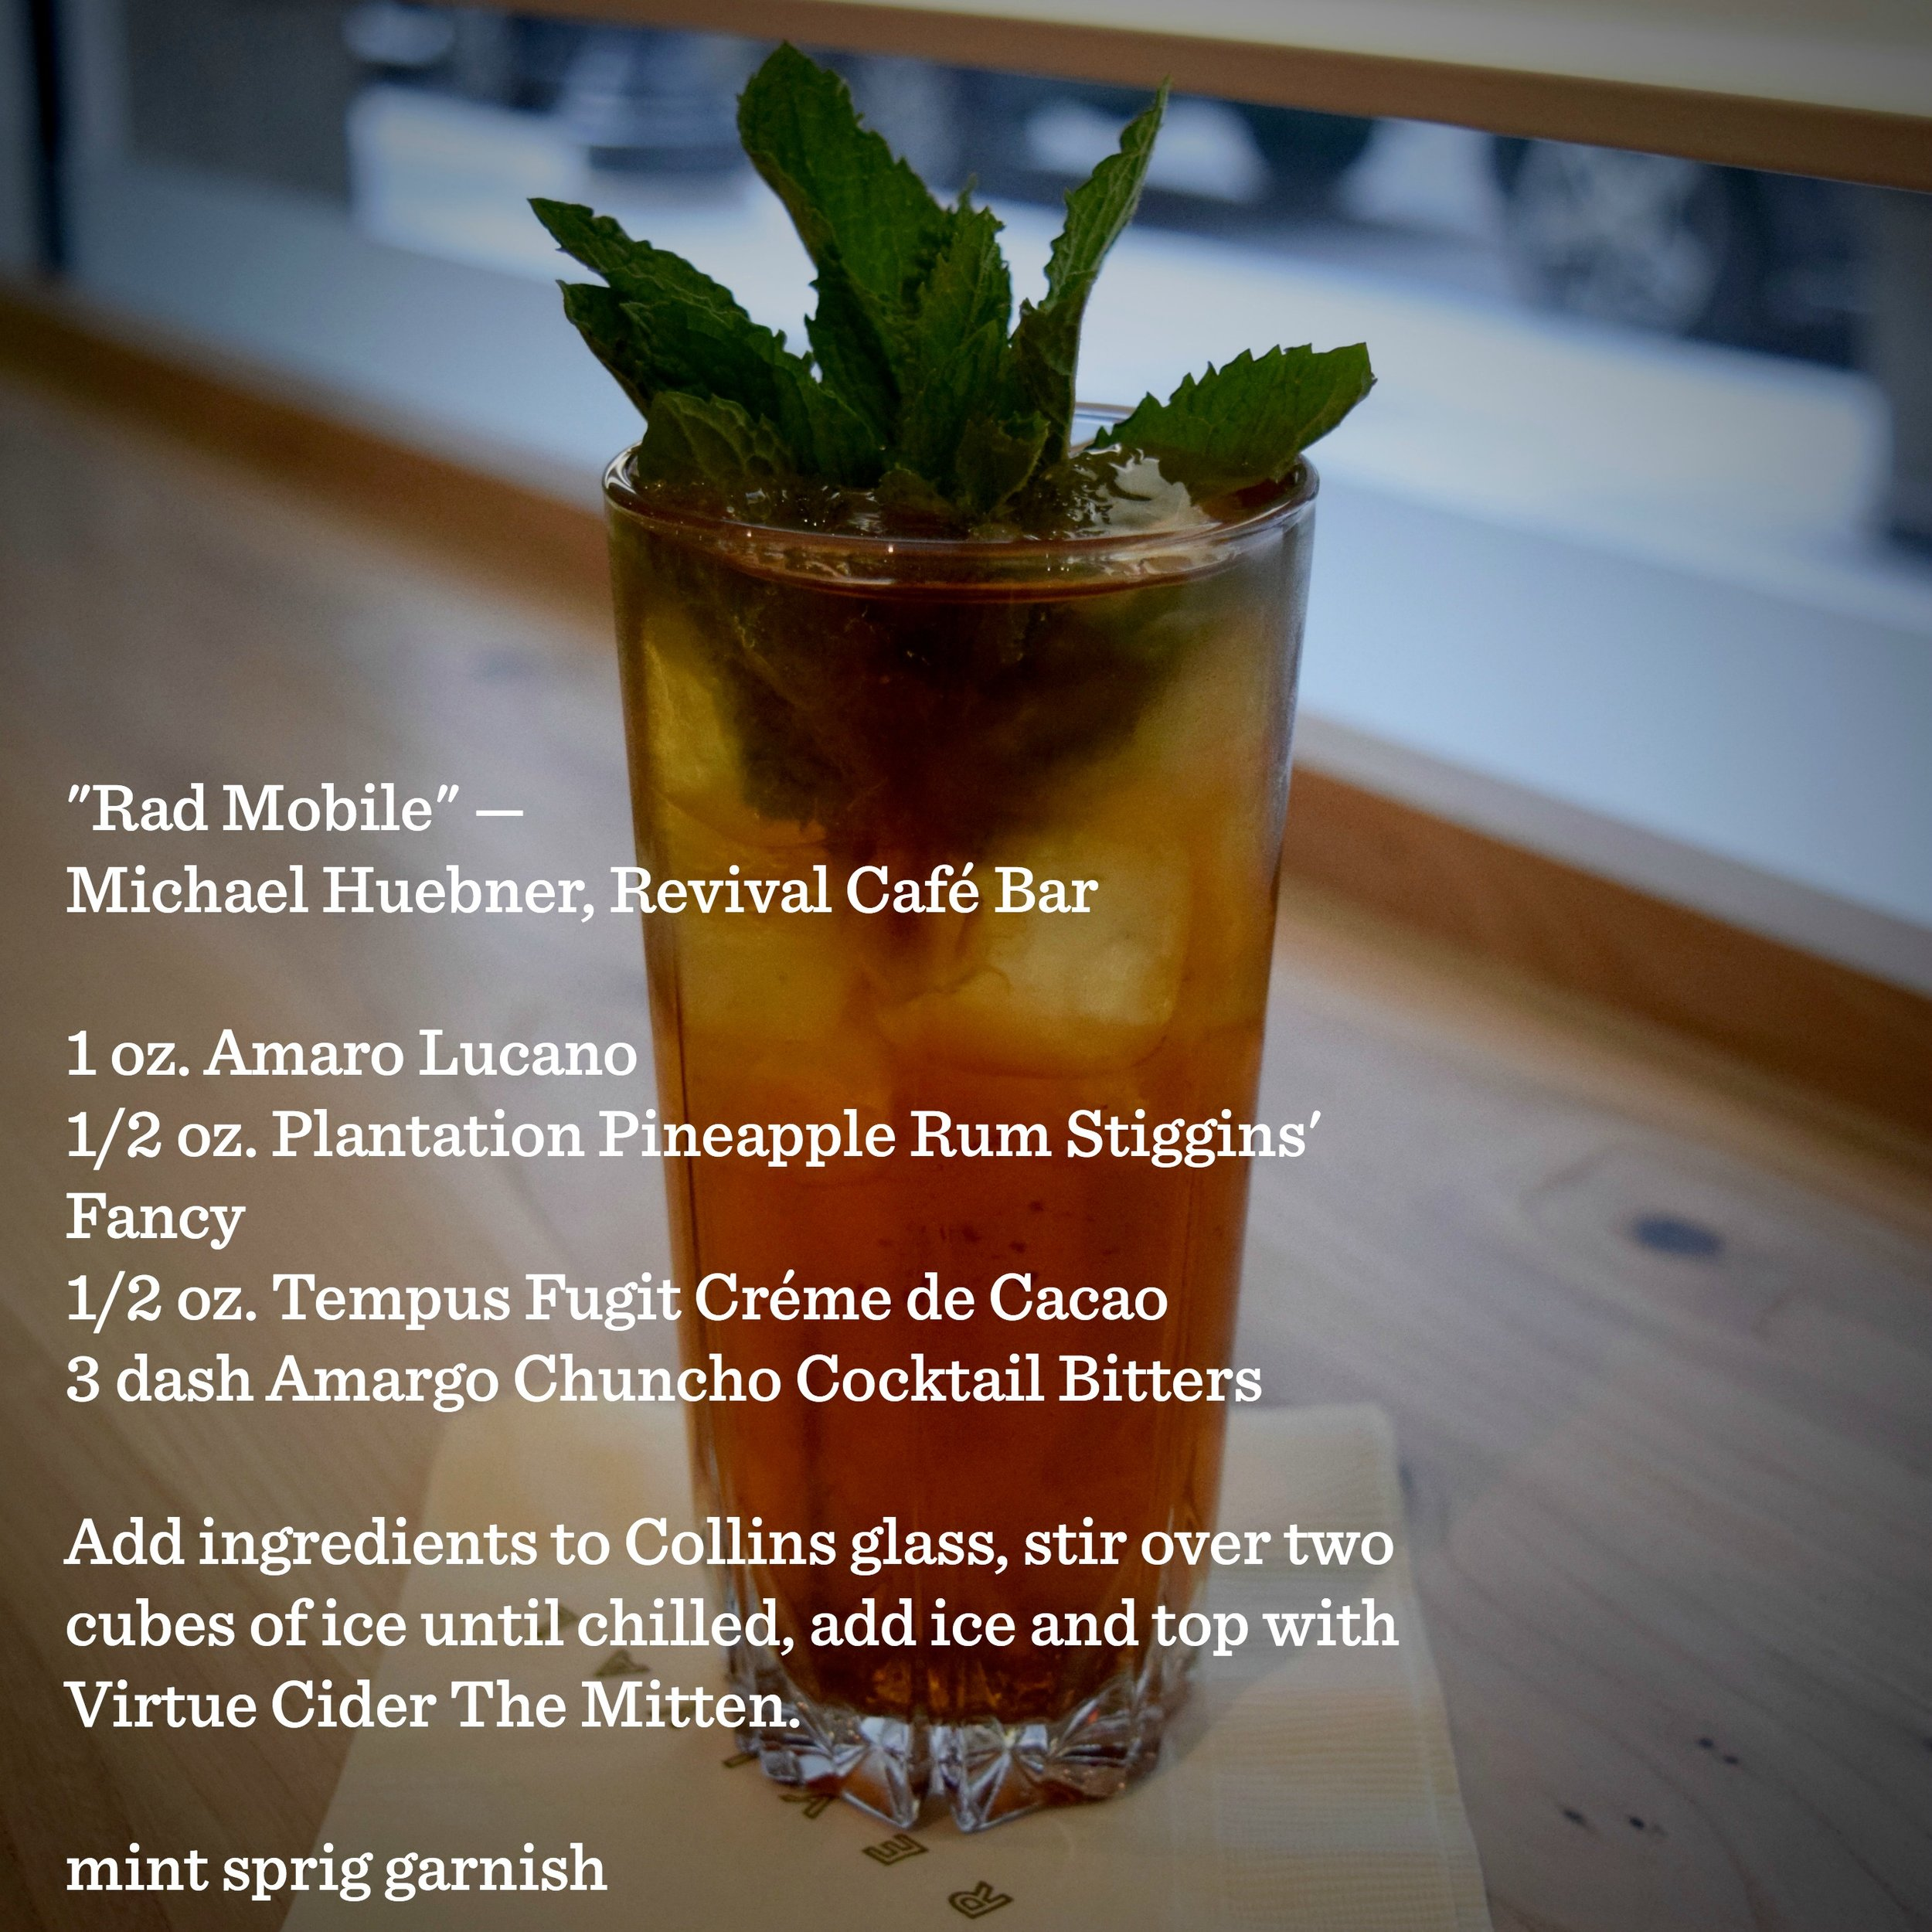 Revival Cafe Bar with recipe.jpg